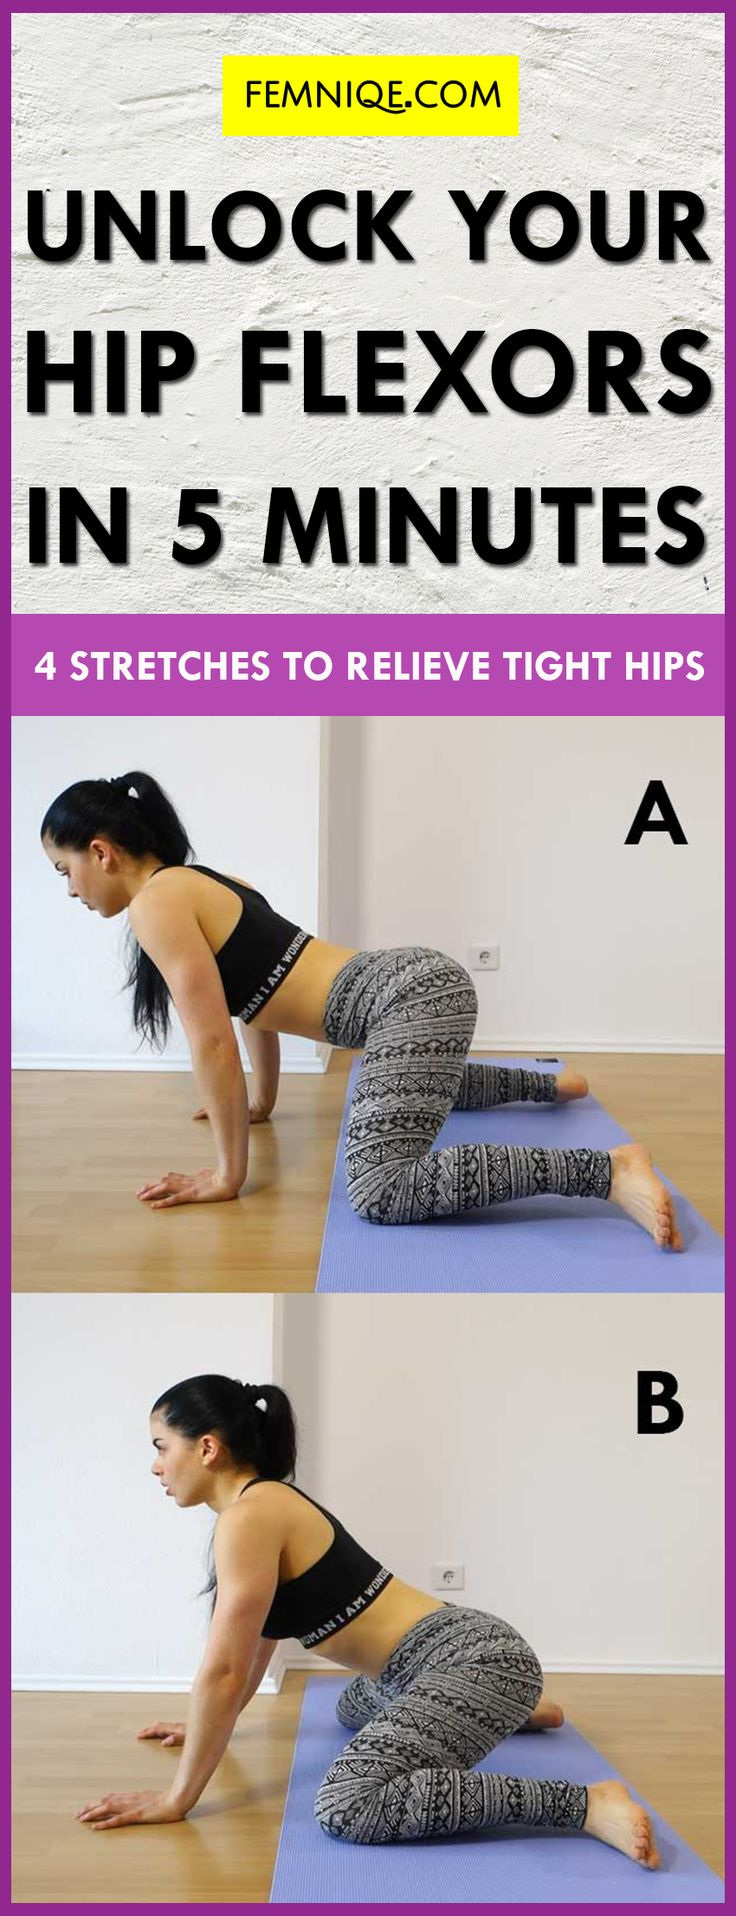 Hip Flexor Stretches: 5 Minutes to Relieve Unlock Tight Hips (Best Guide)